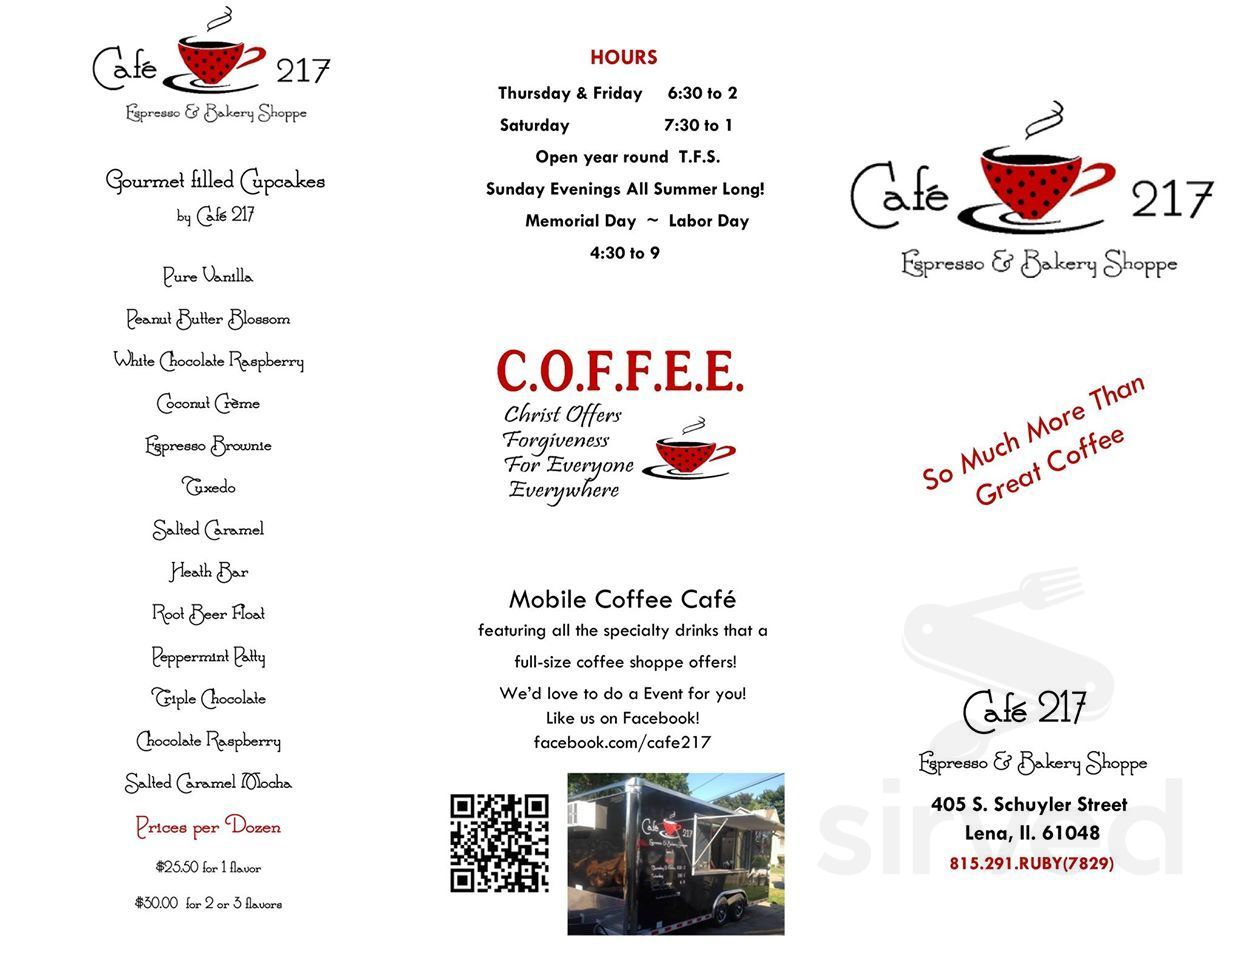 Menu For Cafe 217 Espresso Bakery Shoppe In Lena Illinois